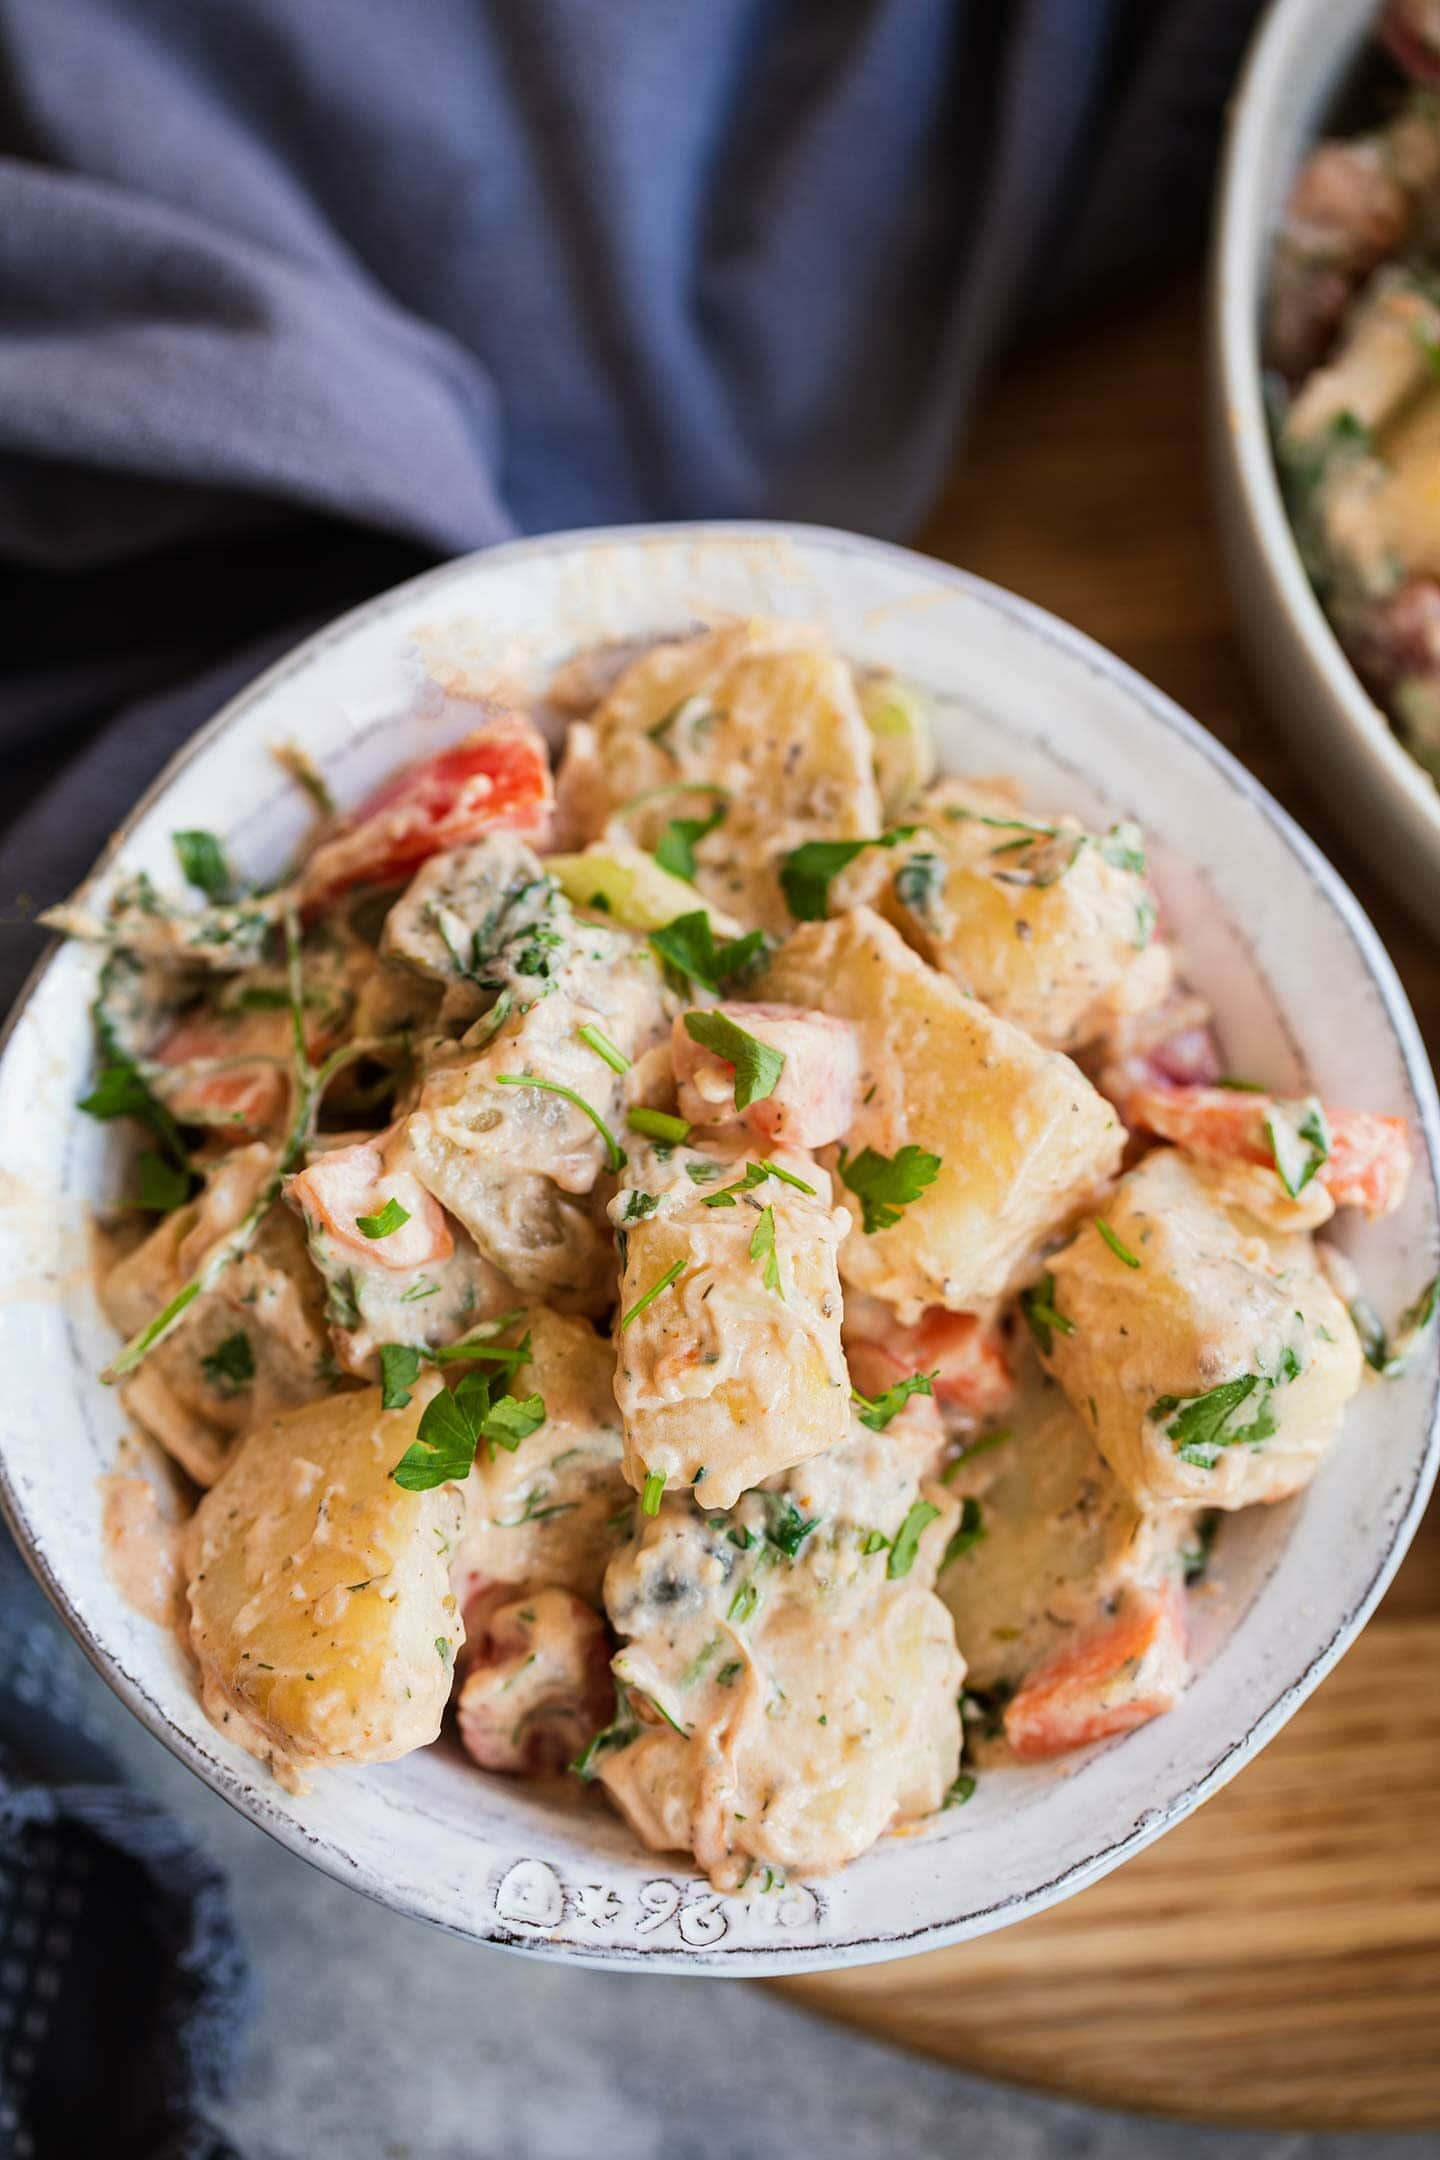 Dairy-free potato salad in a bowl